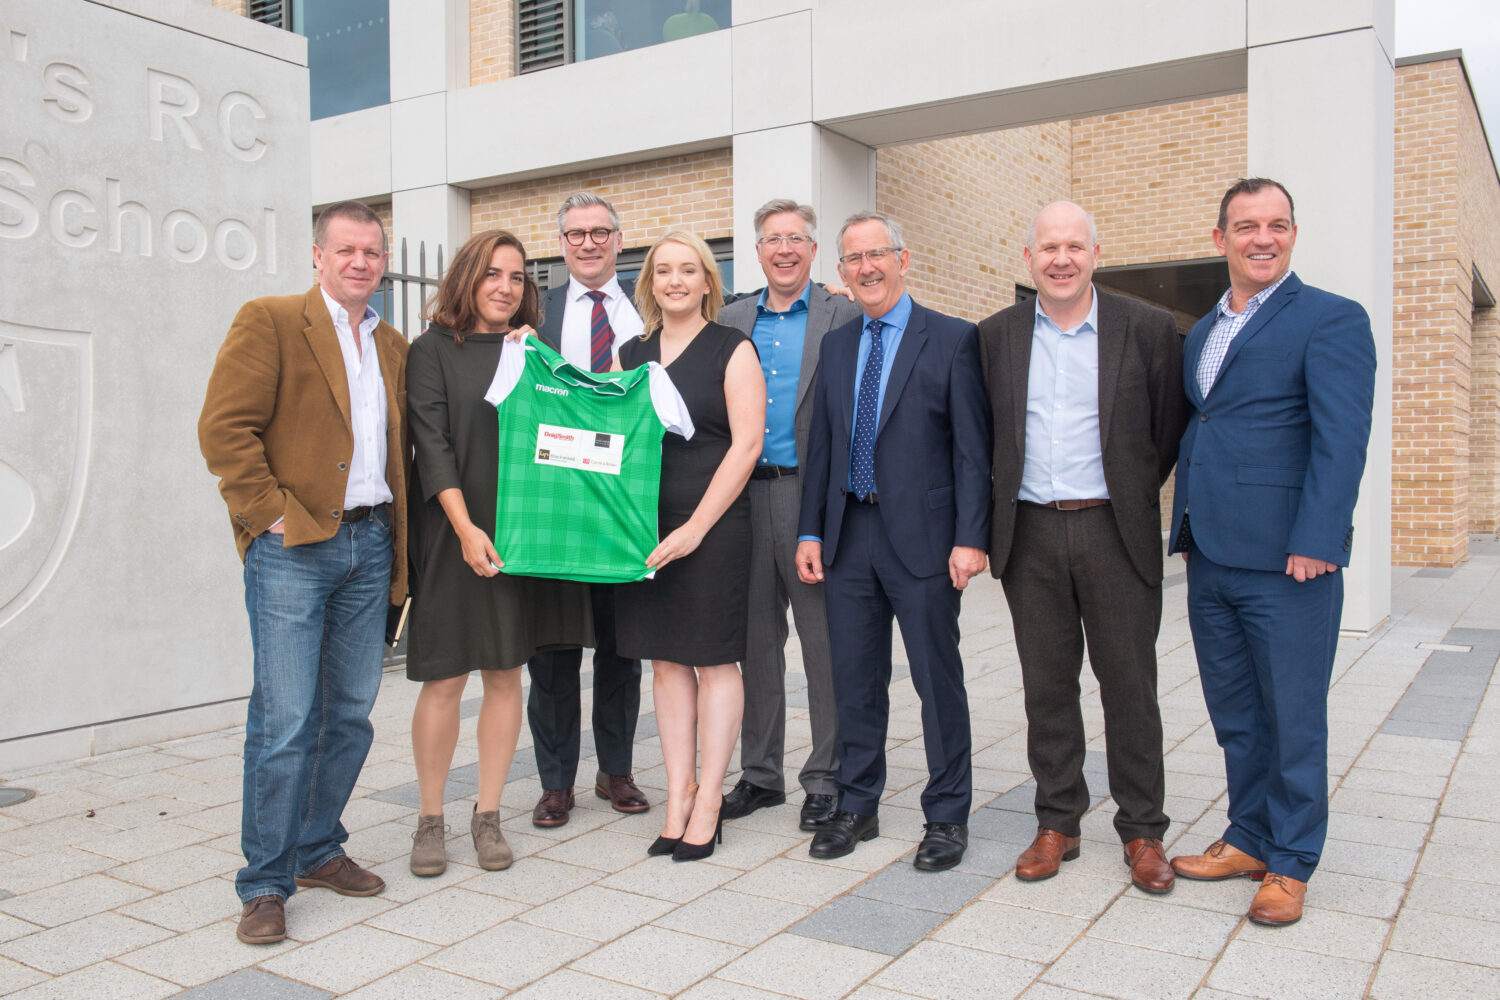 Doig+Smith reveal new St John's Primary School strips at official opening